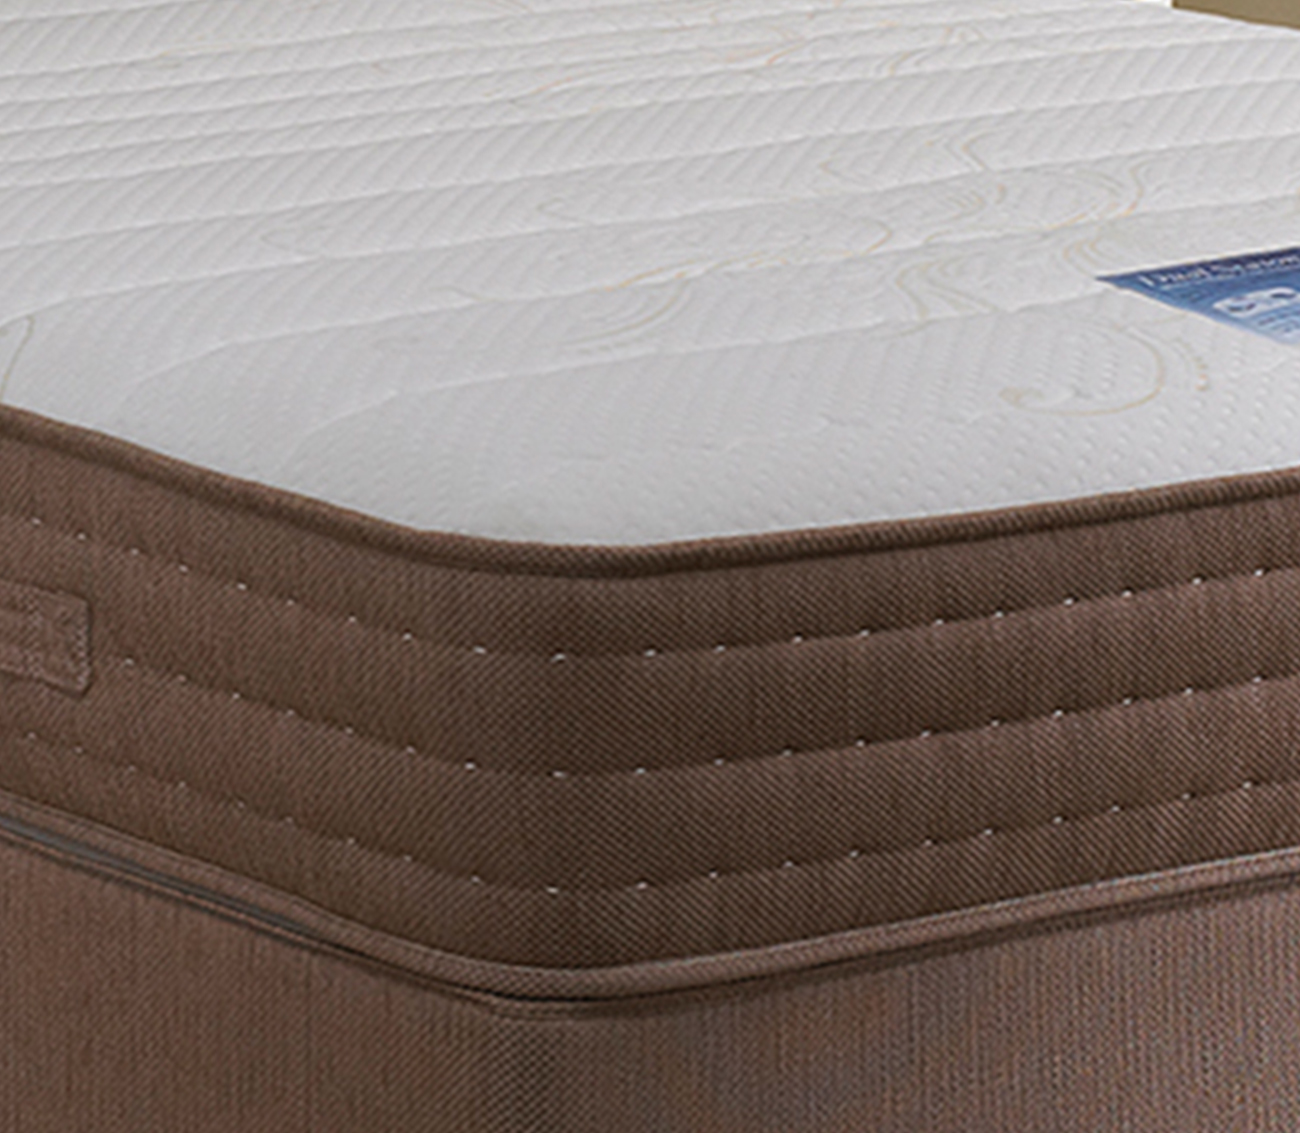 highgrove_duelseason_mattress_main_image